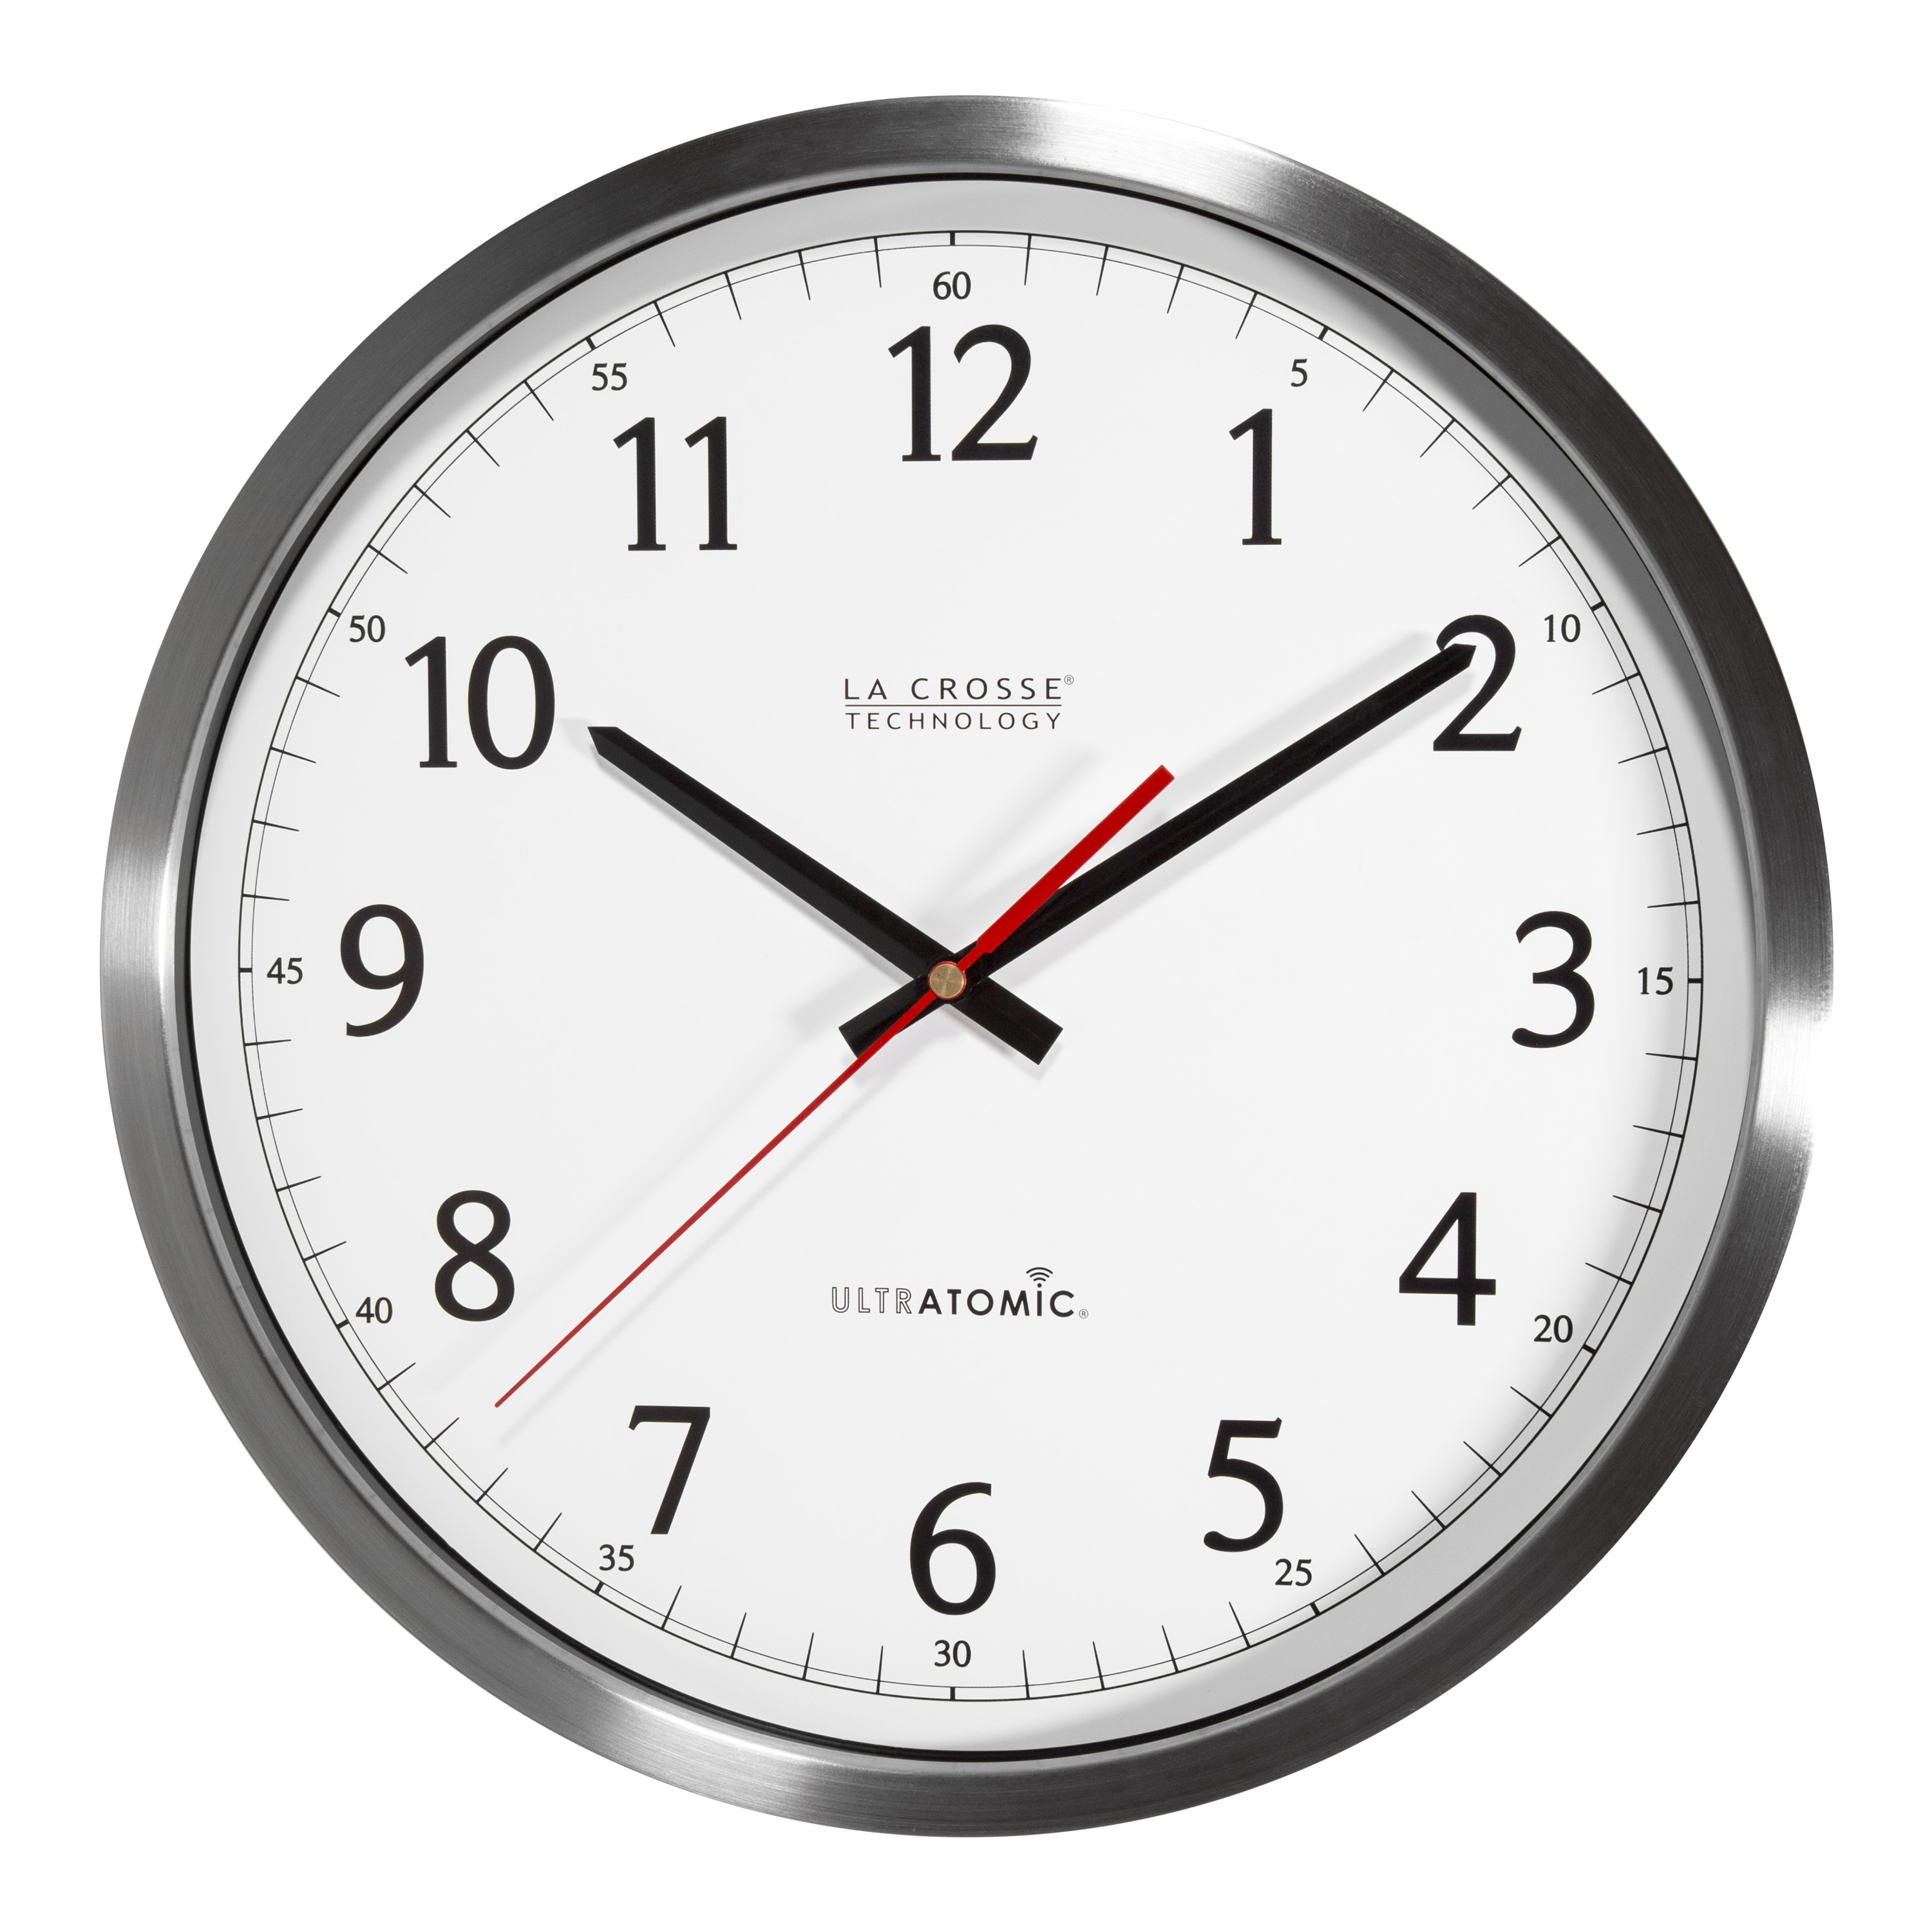 "La Crosse Technology 404-1235UA-SS 14"" UltrAtomic Analog Wall Clock, Silver"